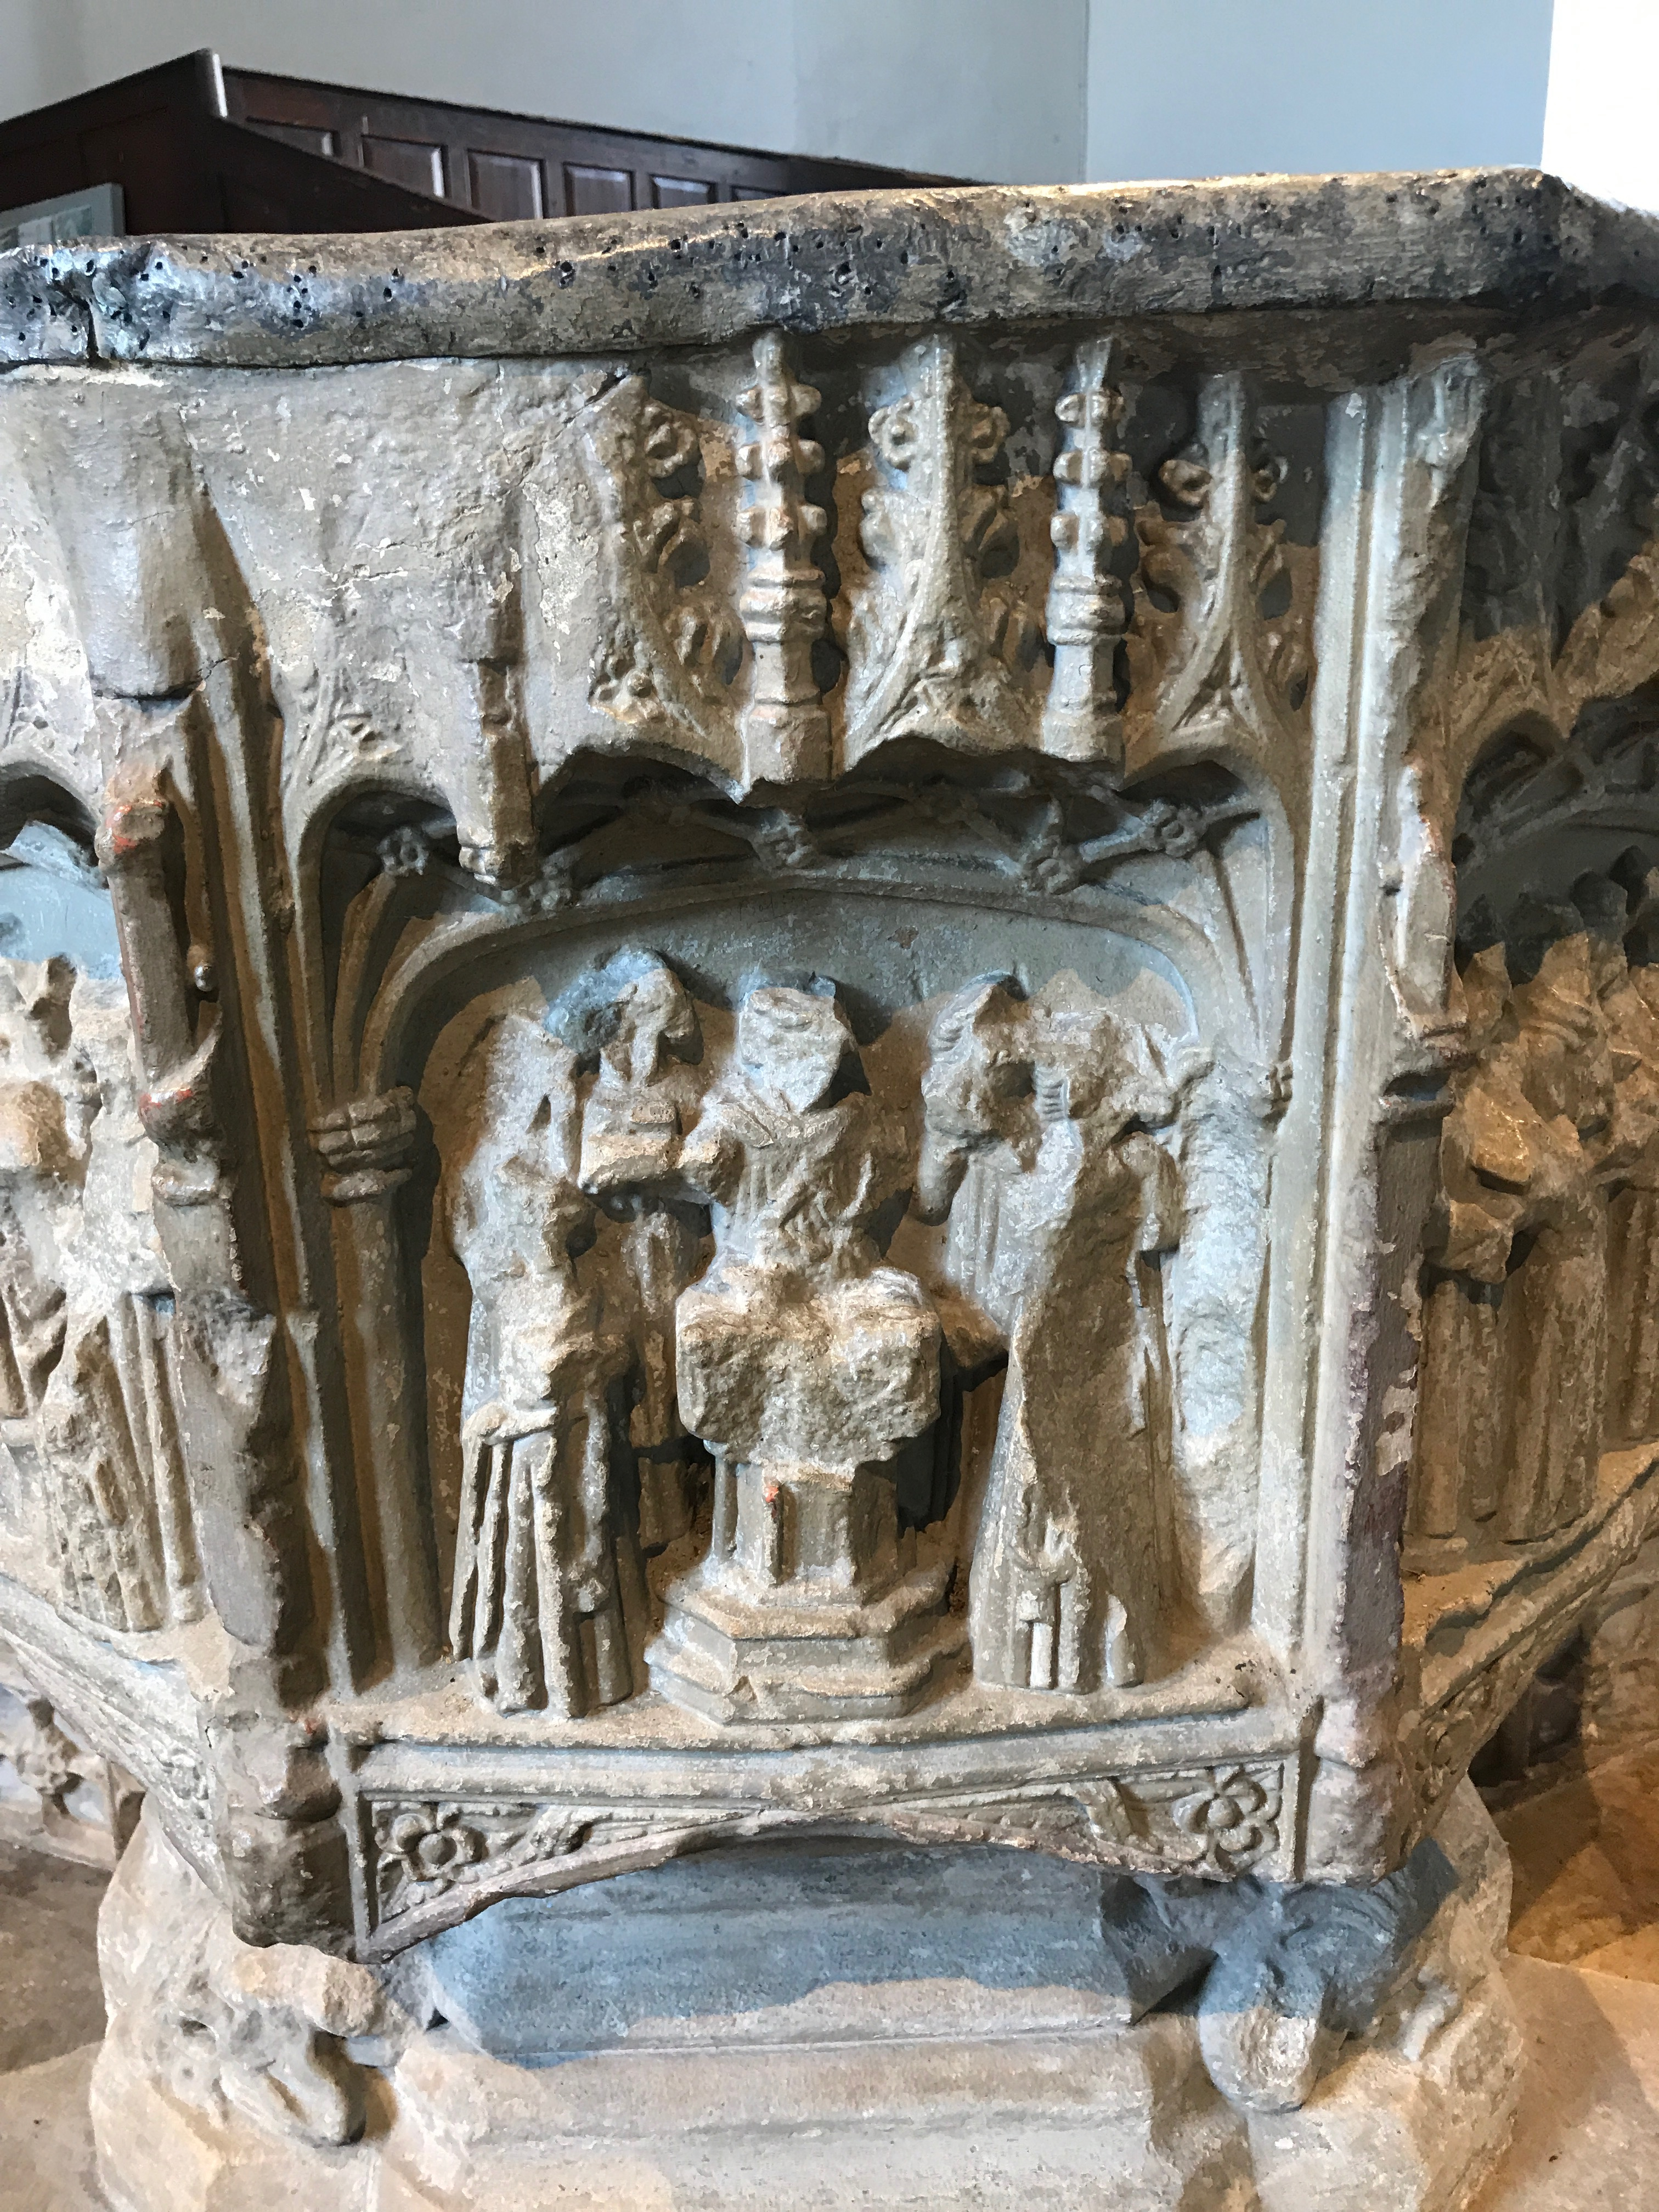 Detail of damaged font, Laxfield - evidence of iconoclasm in 1600s.